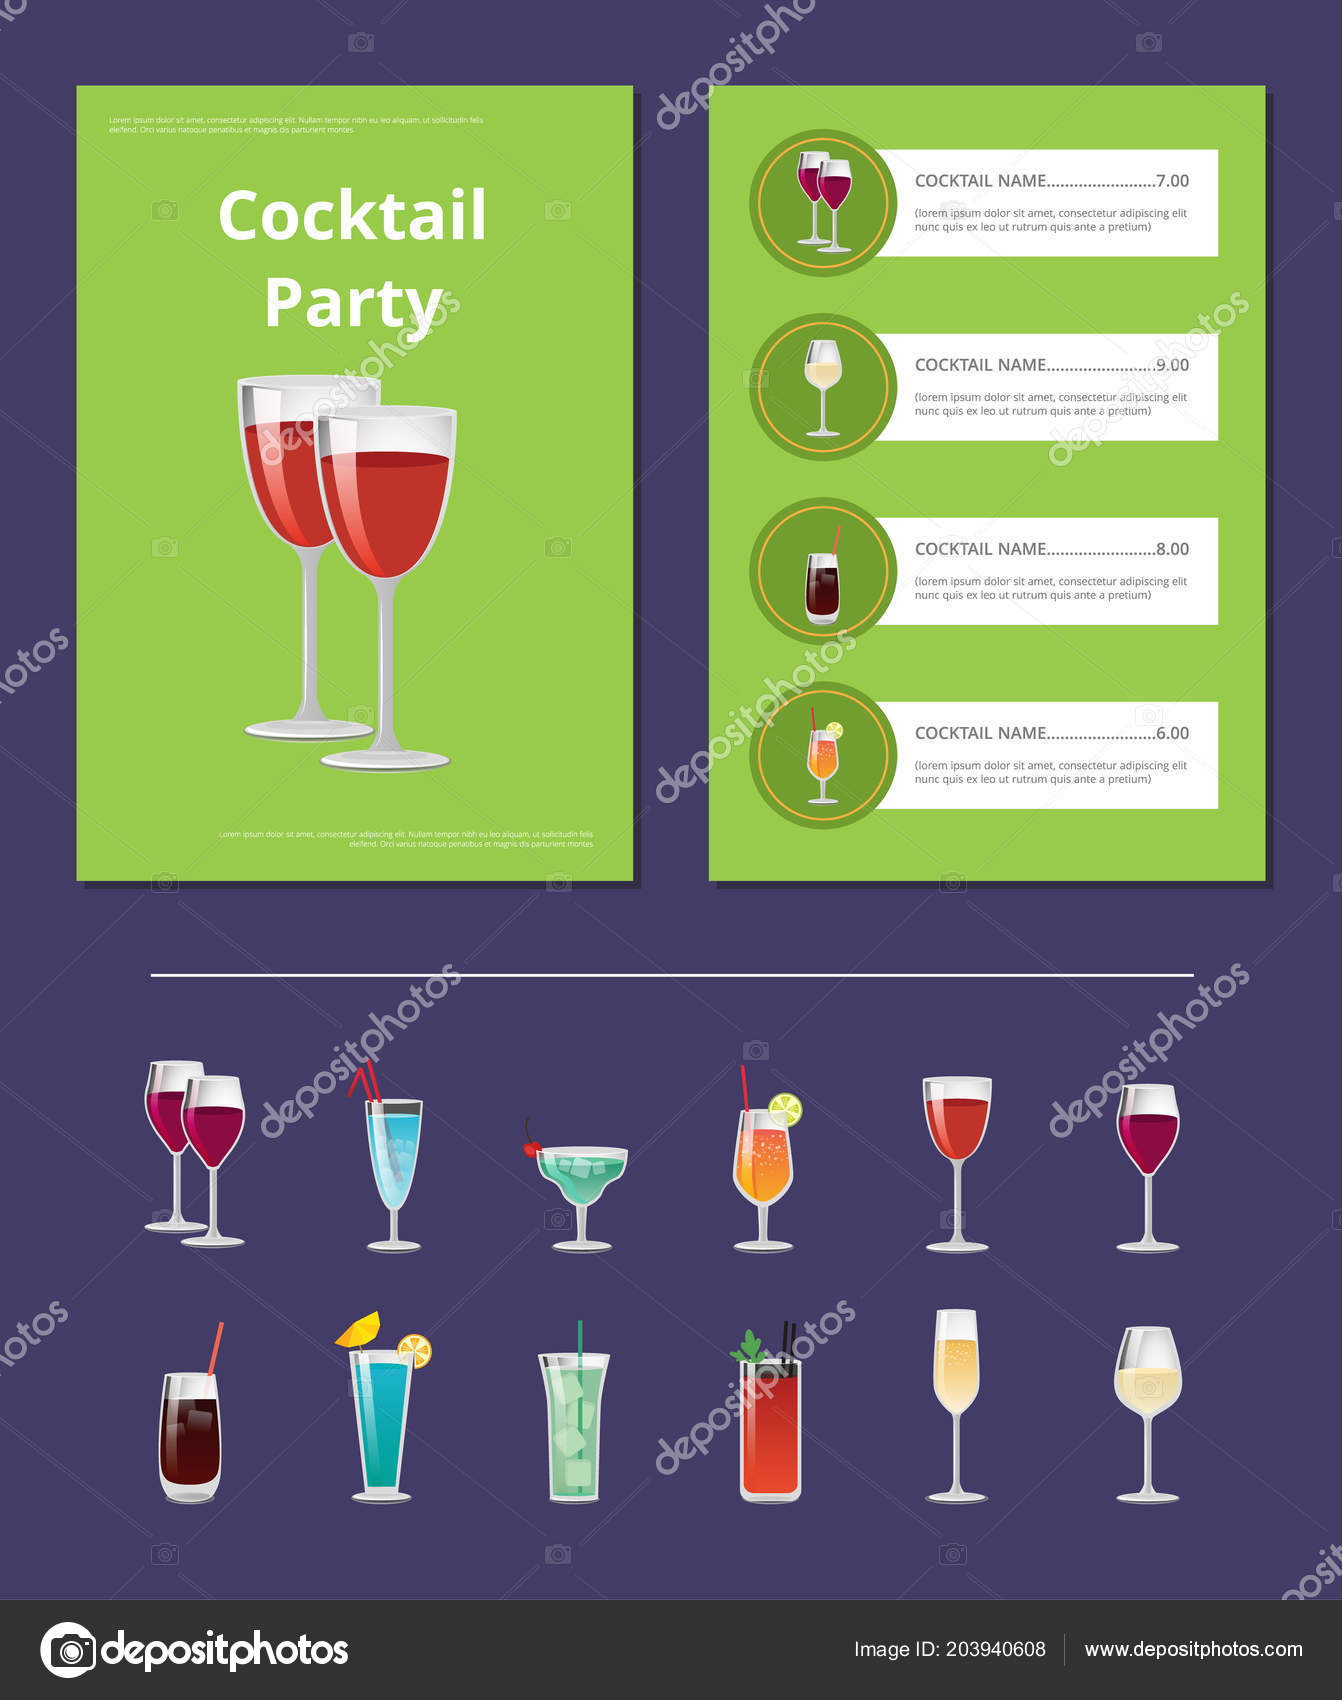 Cocktail Liste Menu De Fête Cocktail Liste Prix Cocktail Ingrédient Image